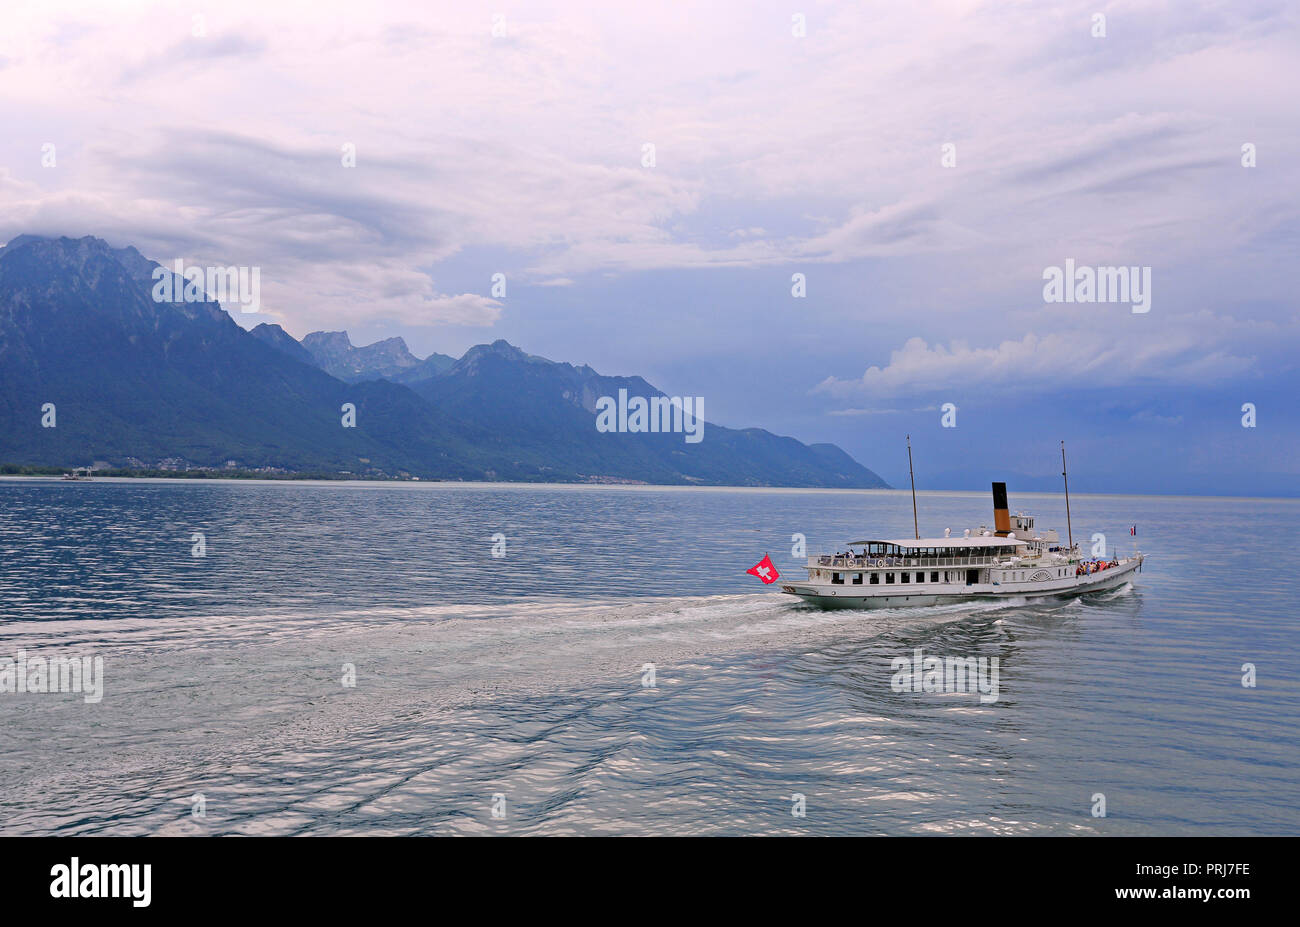 Cruise steamer on Lake Geneva against the background of beautiful mountains and reflection in the water before the storm, Switzerland Stock Photo